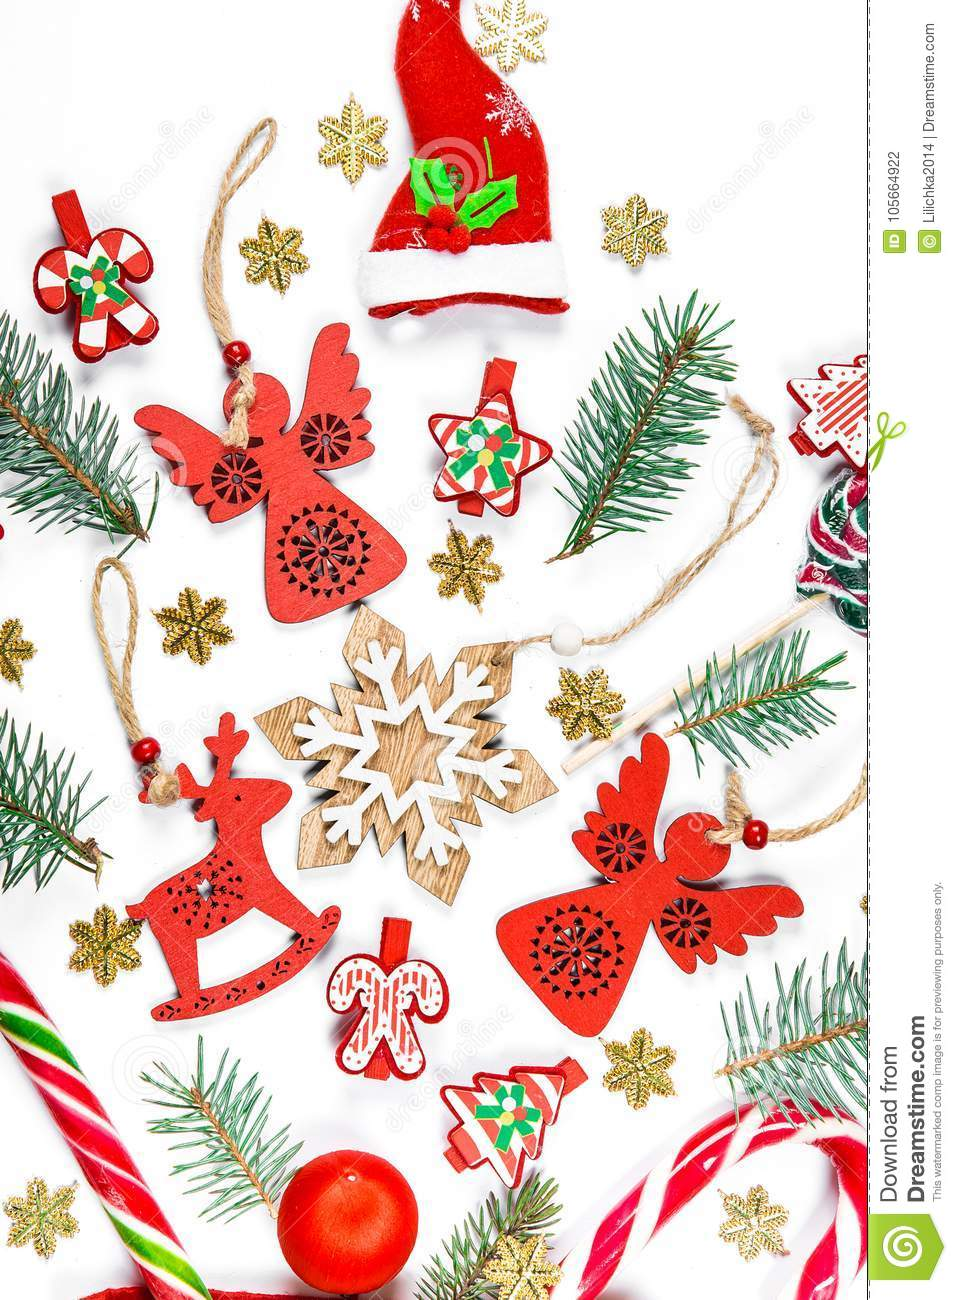 Christmas background with a santa hat, gifts, candy, New Year decorations, toys, branch of Xmas tree on a white background.